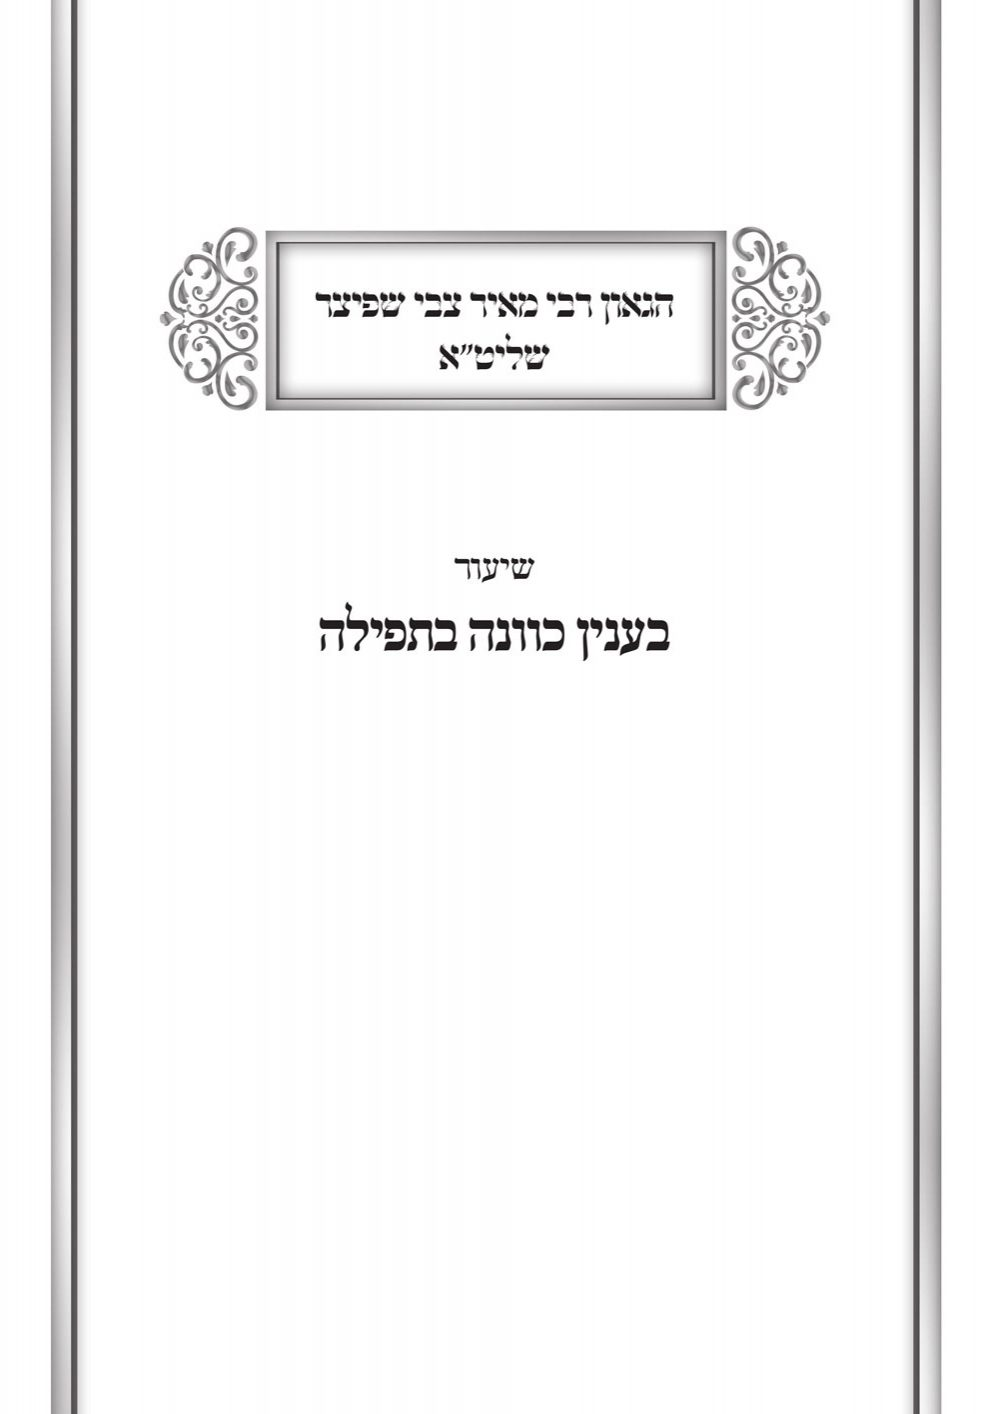 Rabbi-MTSpitzer-1